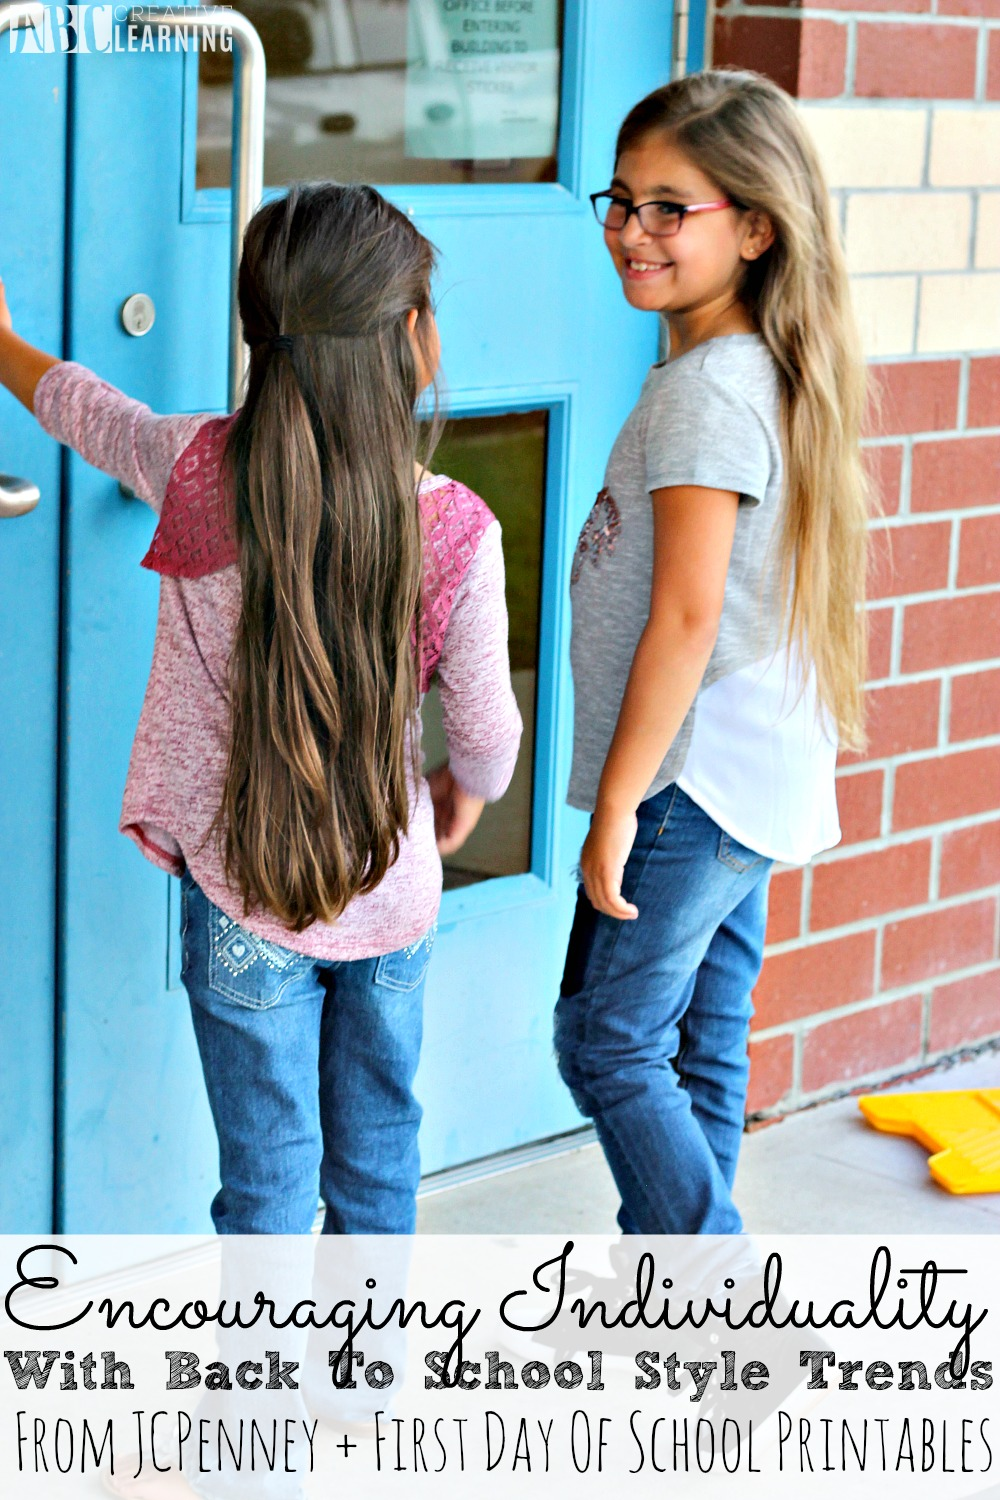 Encouraging Individuality With Back To School Style Trends From JCPenney + First Day Of School Printables and Girls Fashion - abccreativelearning.com